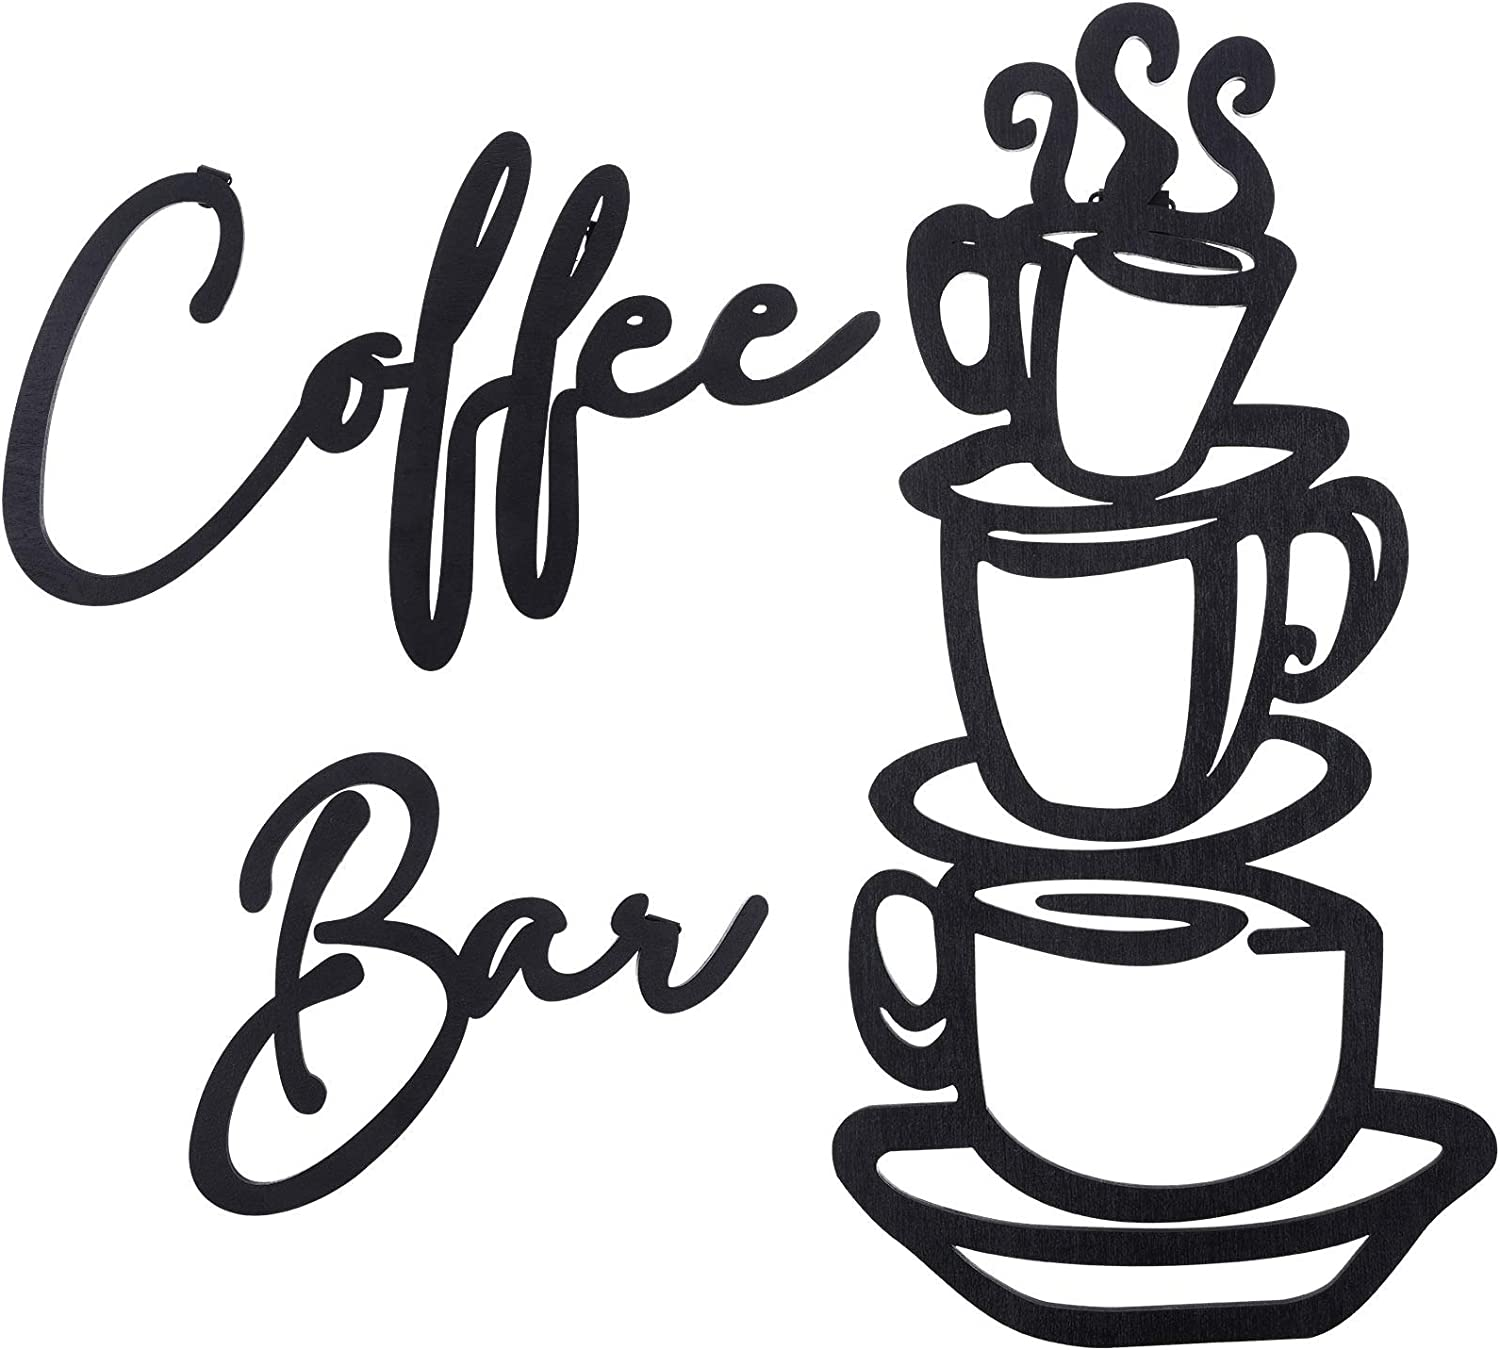 3 Pieces Coffee Bar Wall Sign Rustic Wooden Coffee Cup Wall Art Wood Letter Sign Farmhouse Kitchen Wall Decor for Home Restaurants Decoration (Black)